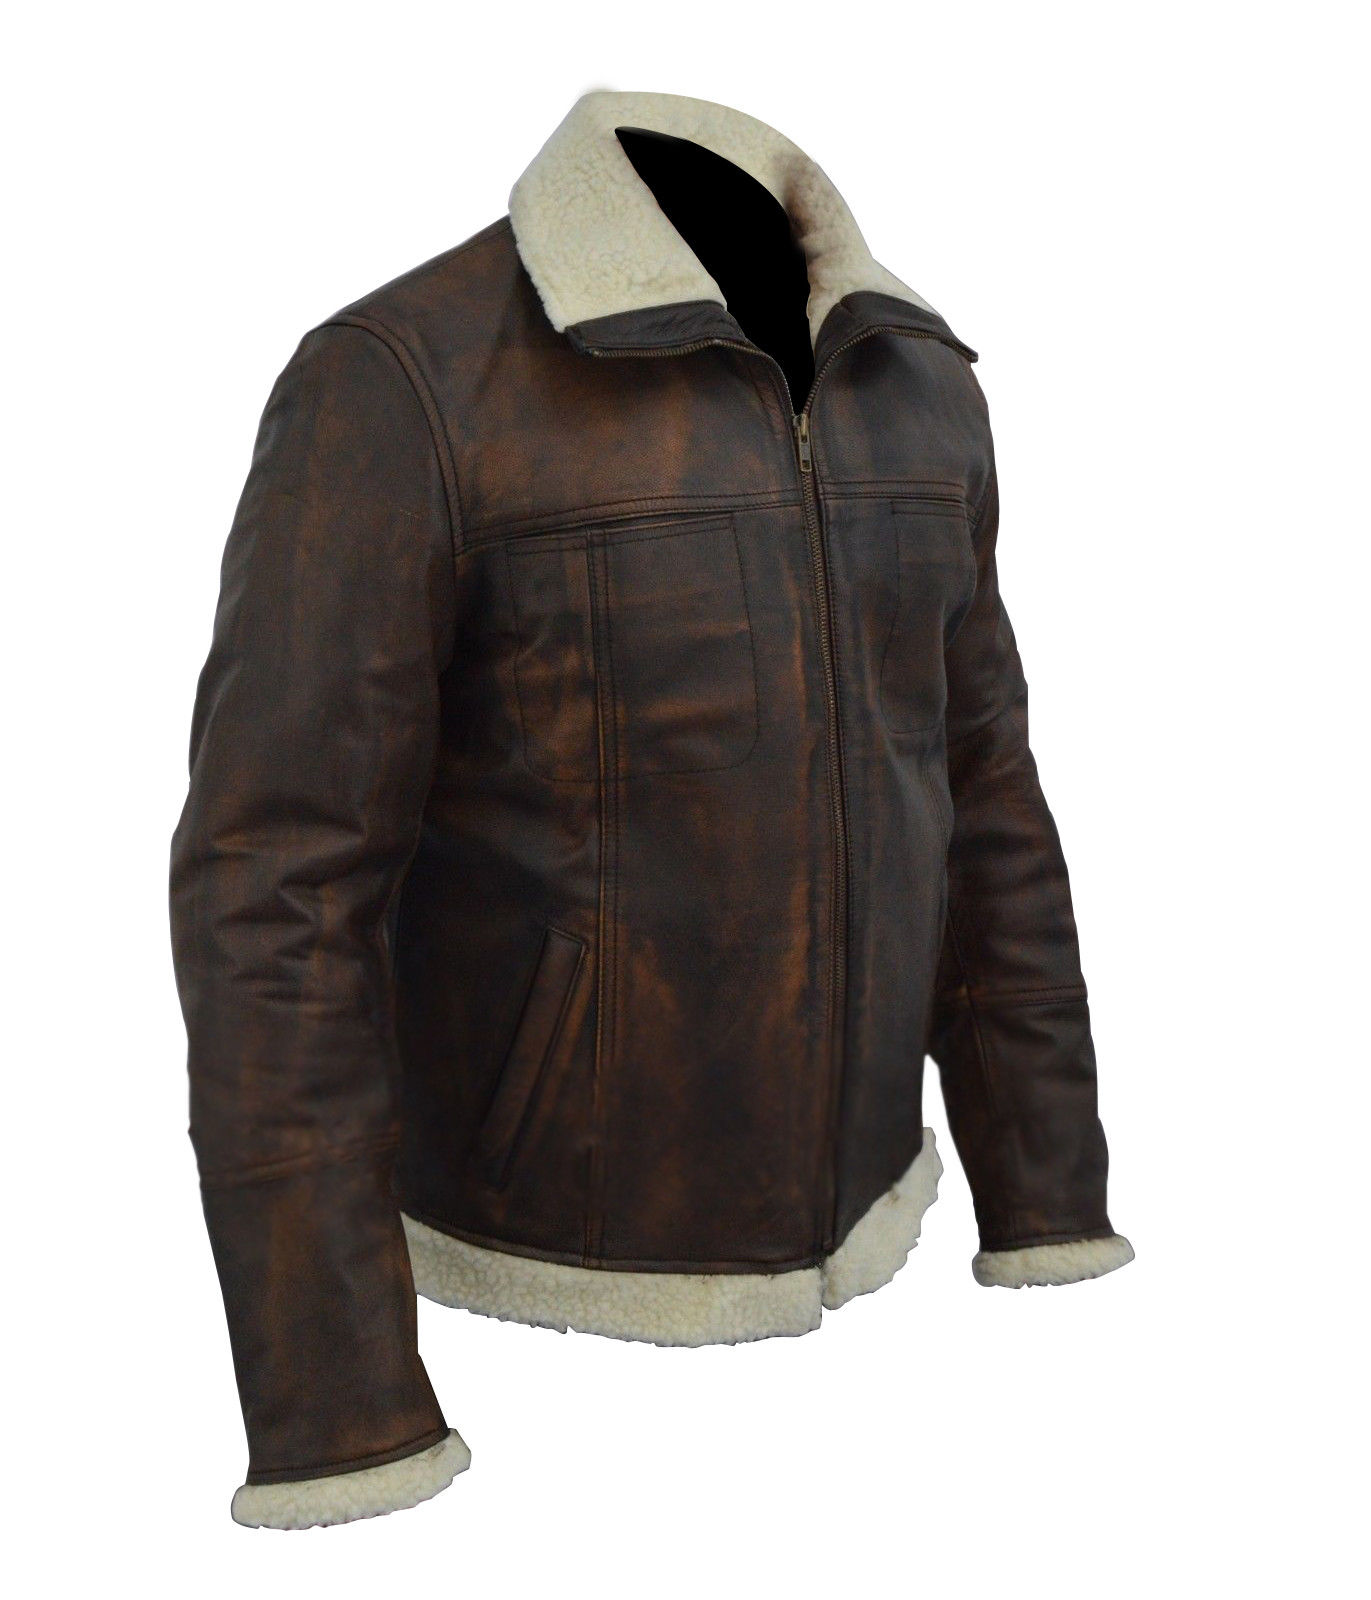 Xander Cage Vin Diesel Distressed Brown Leather Jacket1